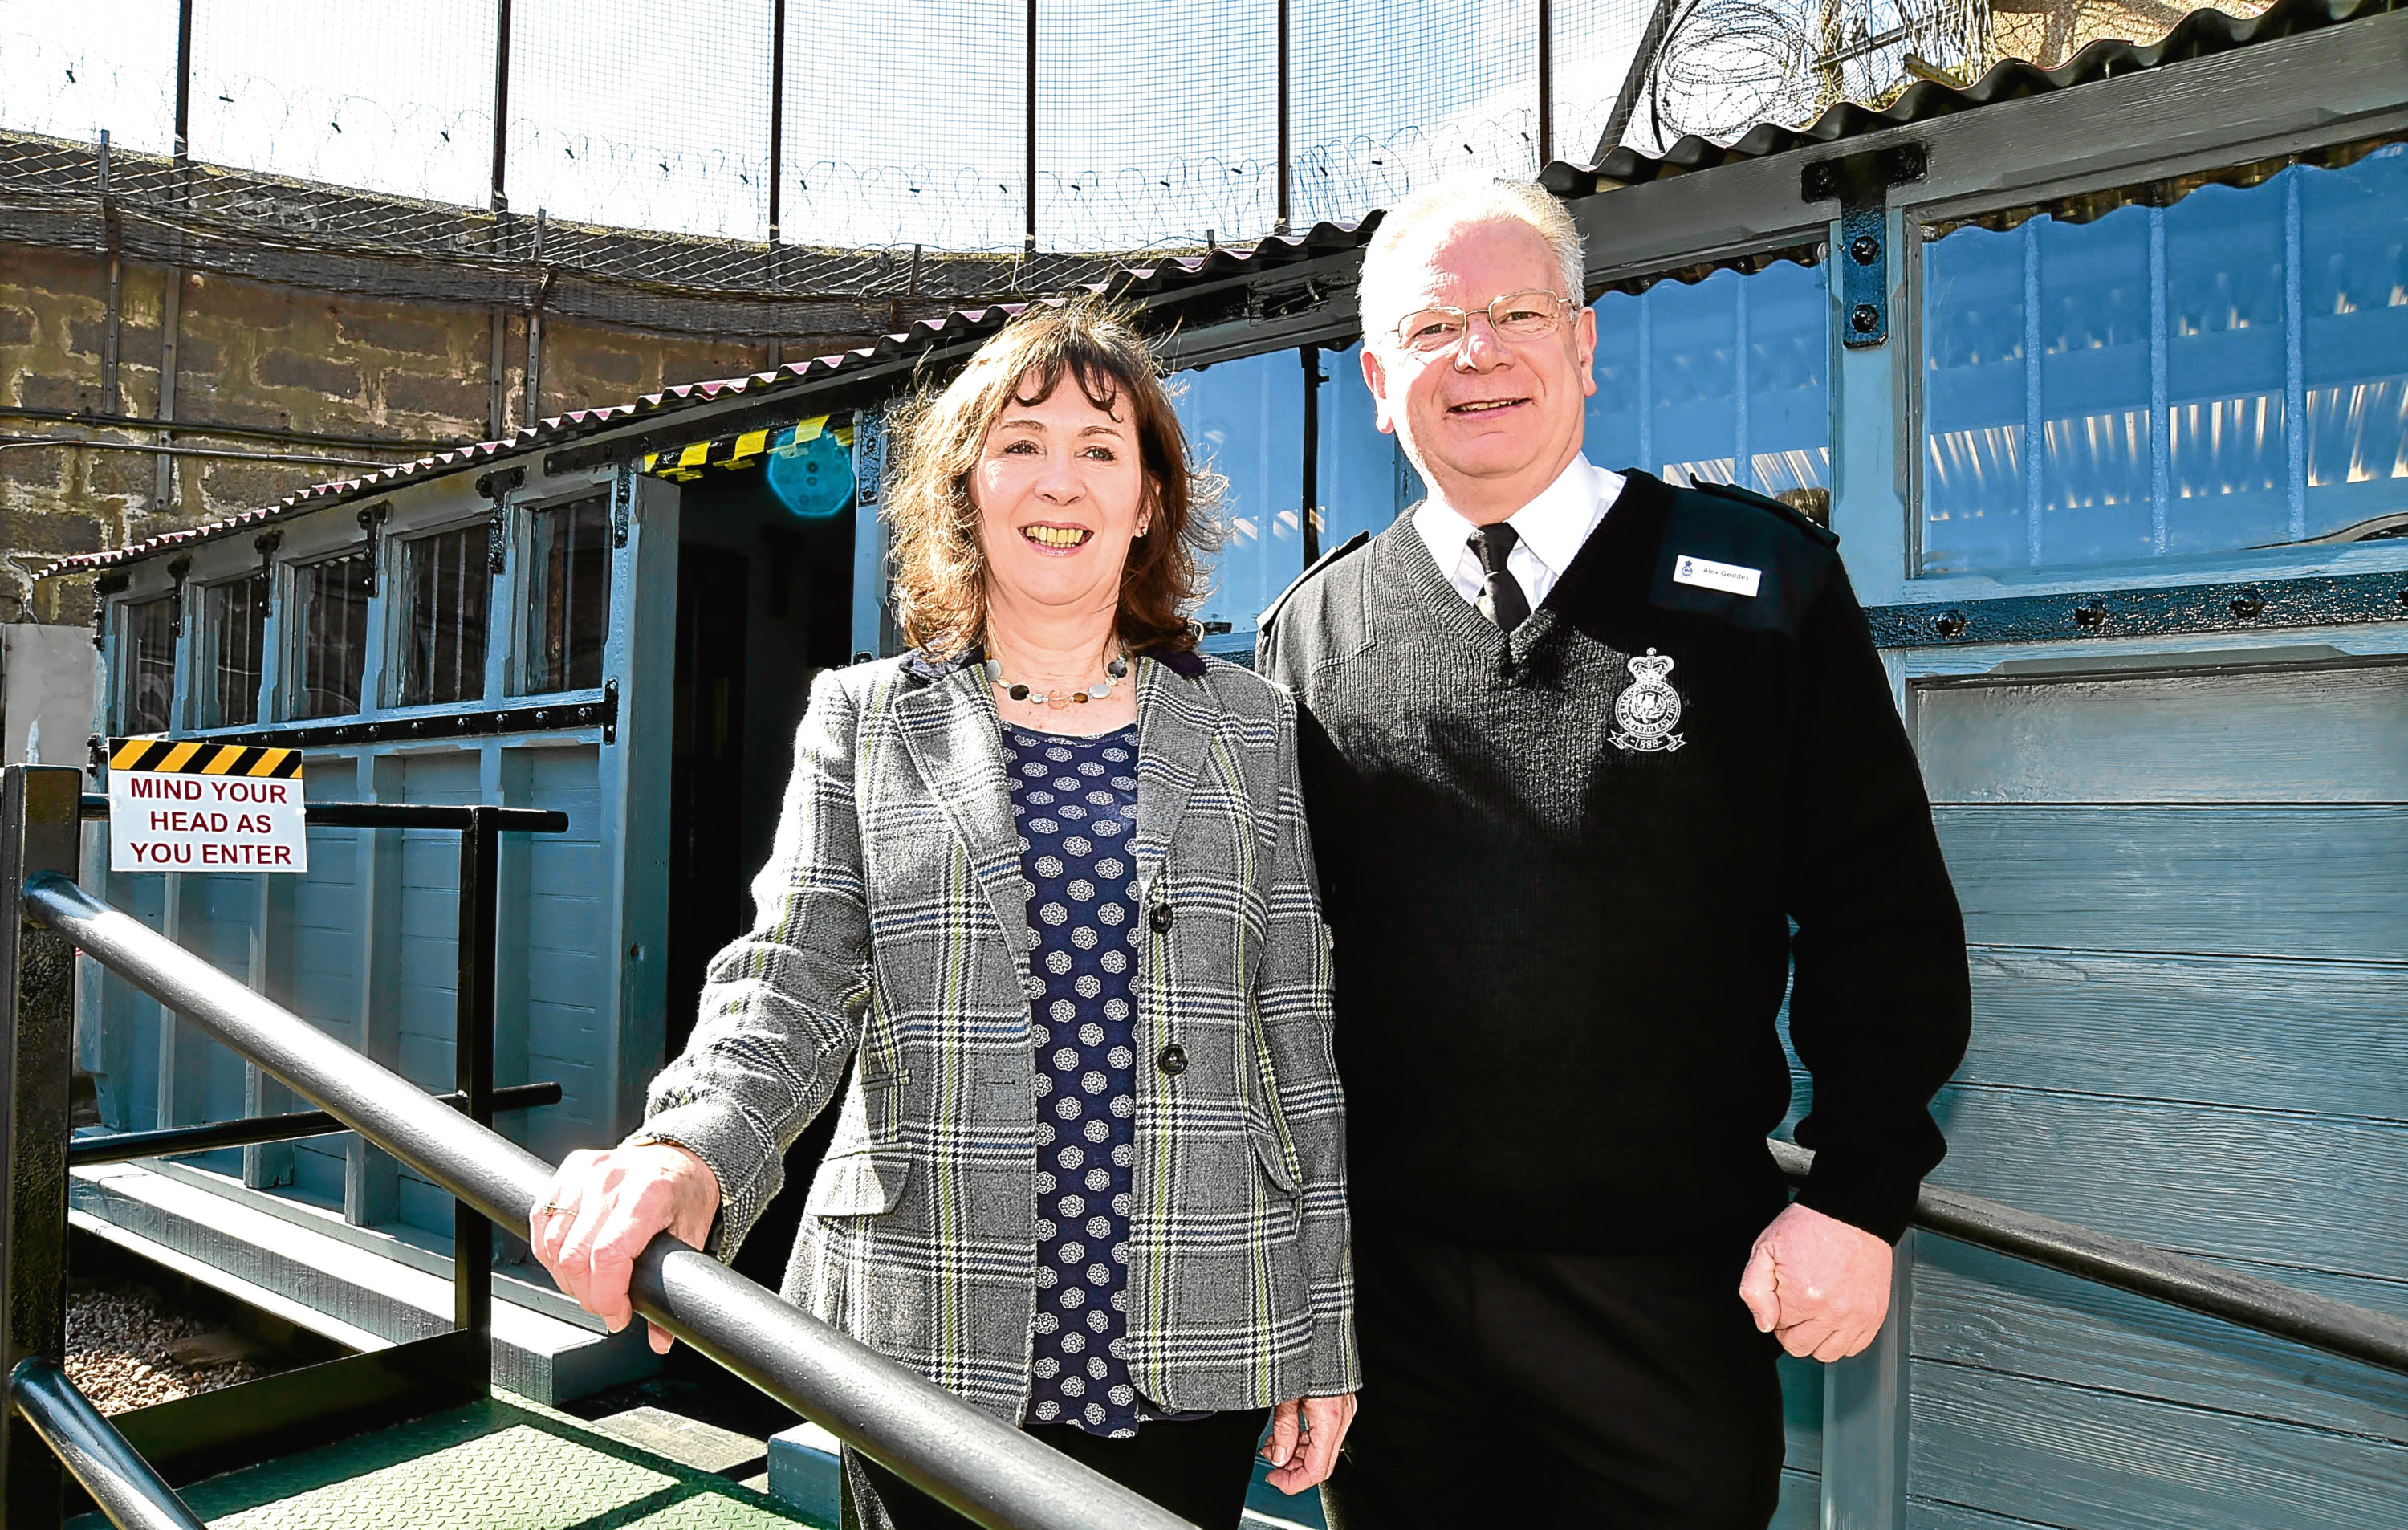 Alison Clark with operations manager Alex Geddes at the new prisoner carriage exhibit at the Peterhead Prison Museum.